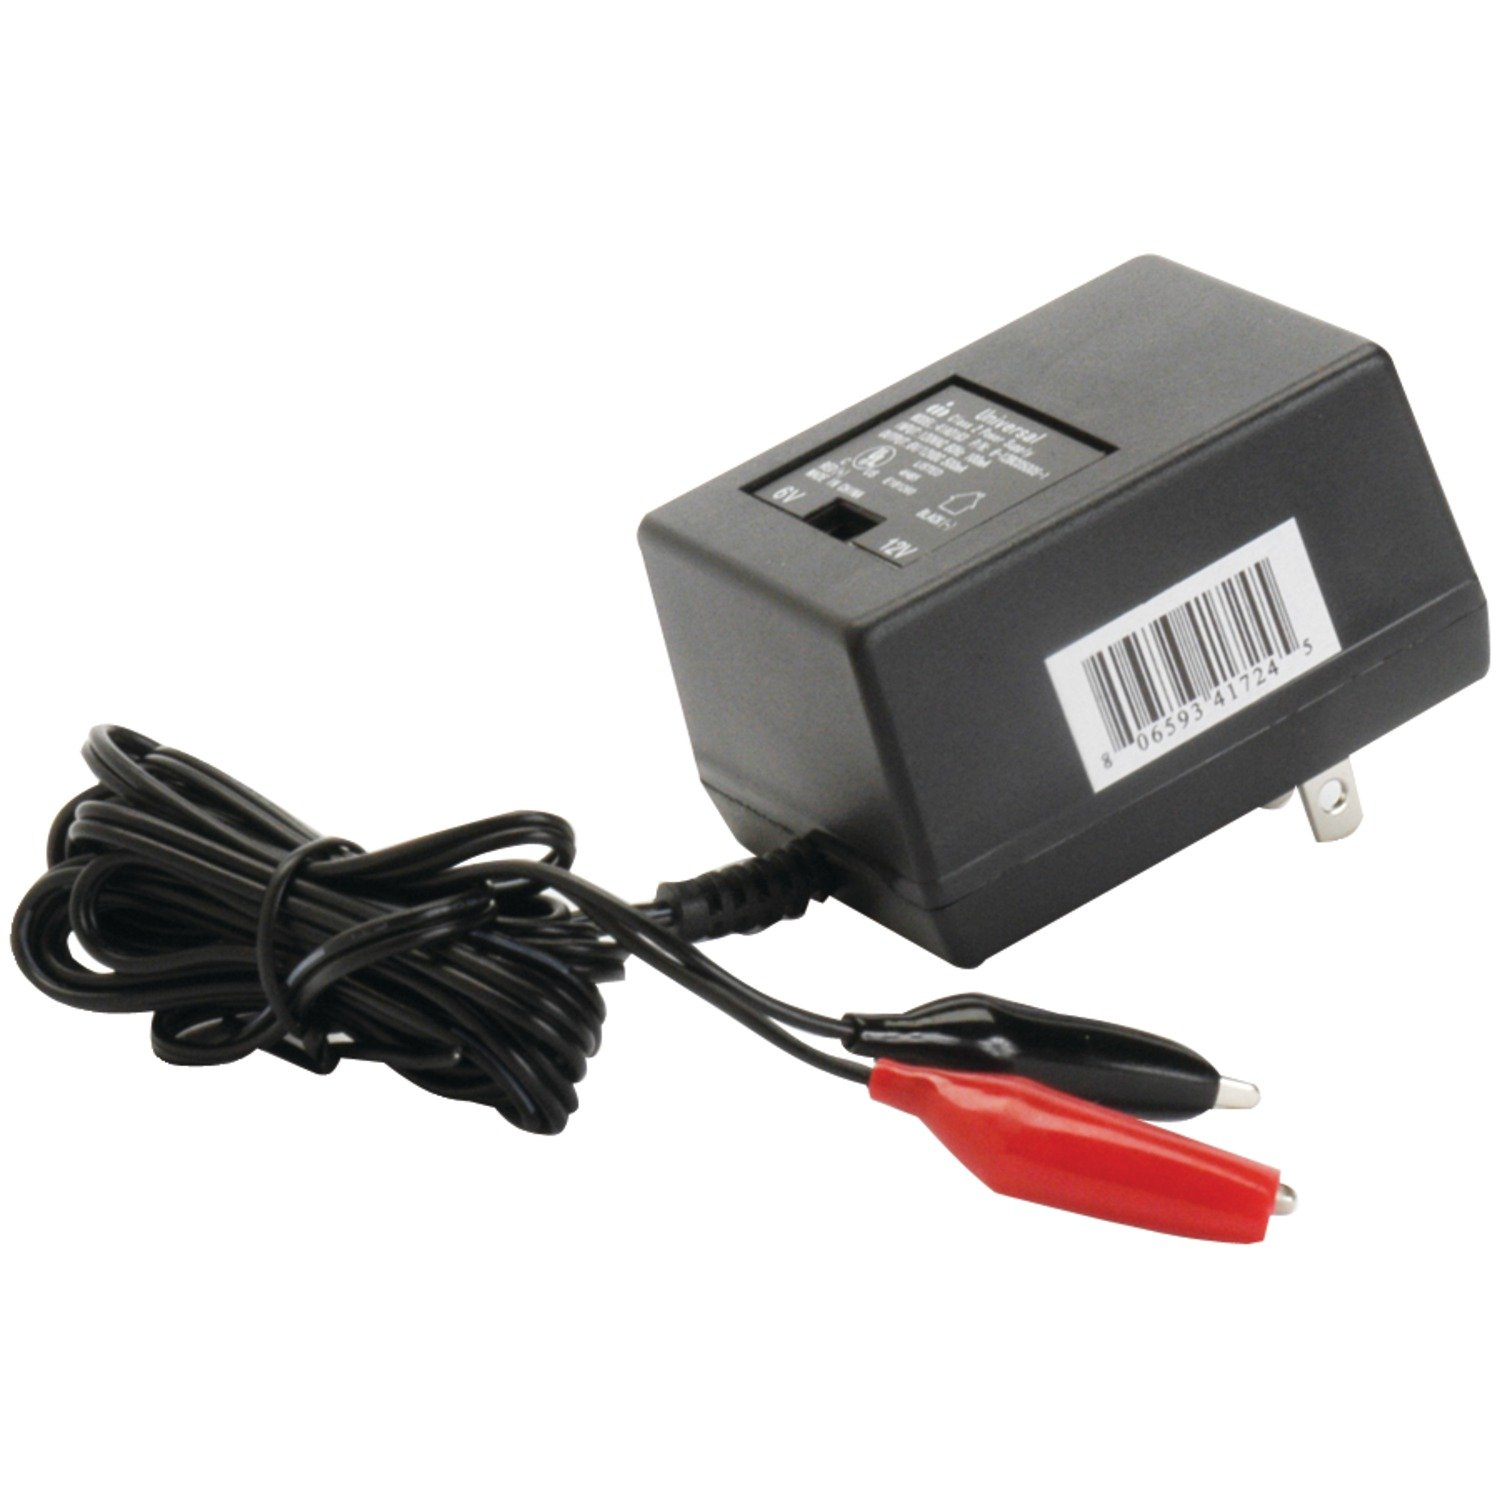 Sealed Lead Acid Battery Charger Upg D1724 Automotive Requirement For The Proposed Desulfator With Circuit